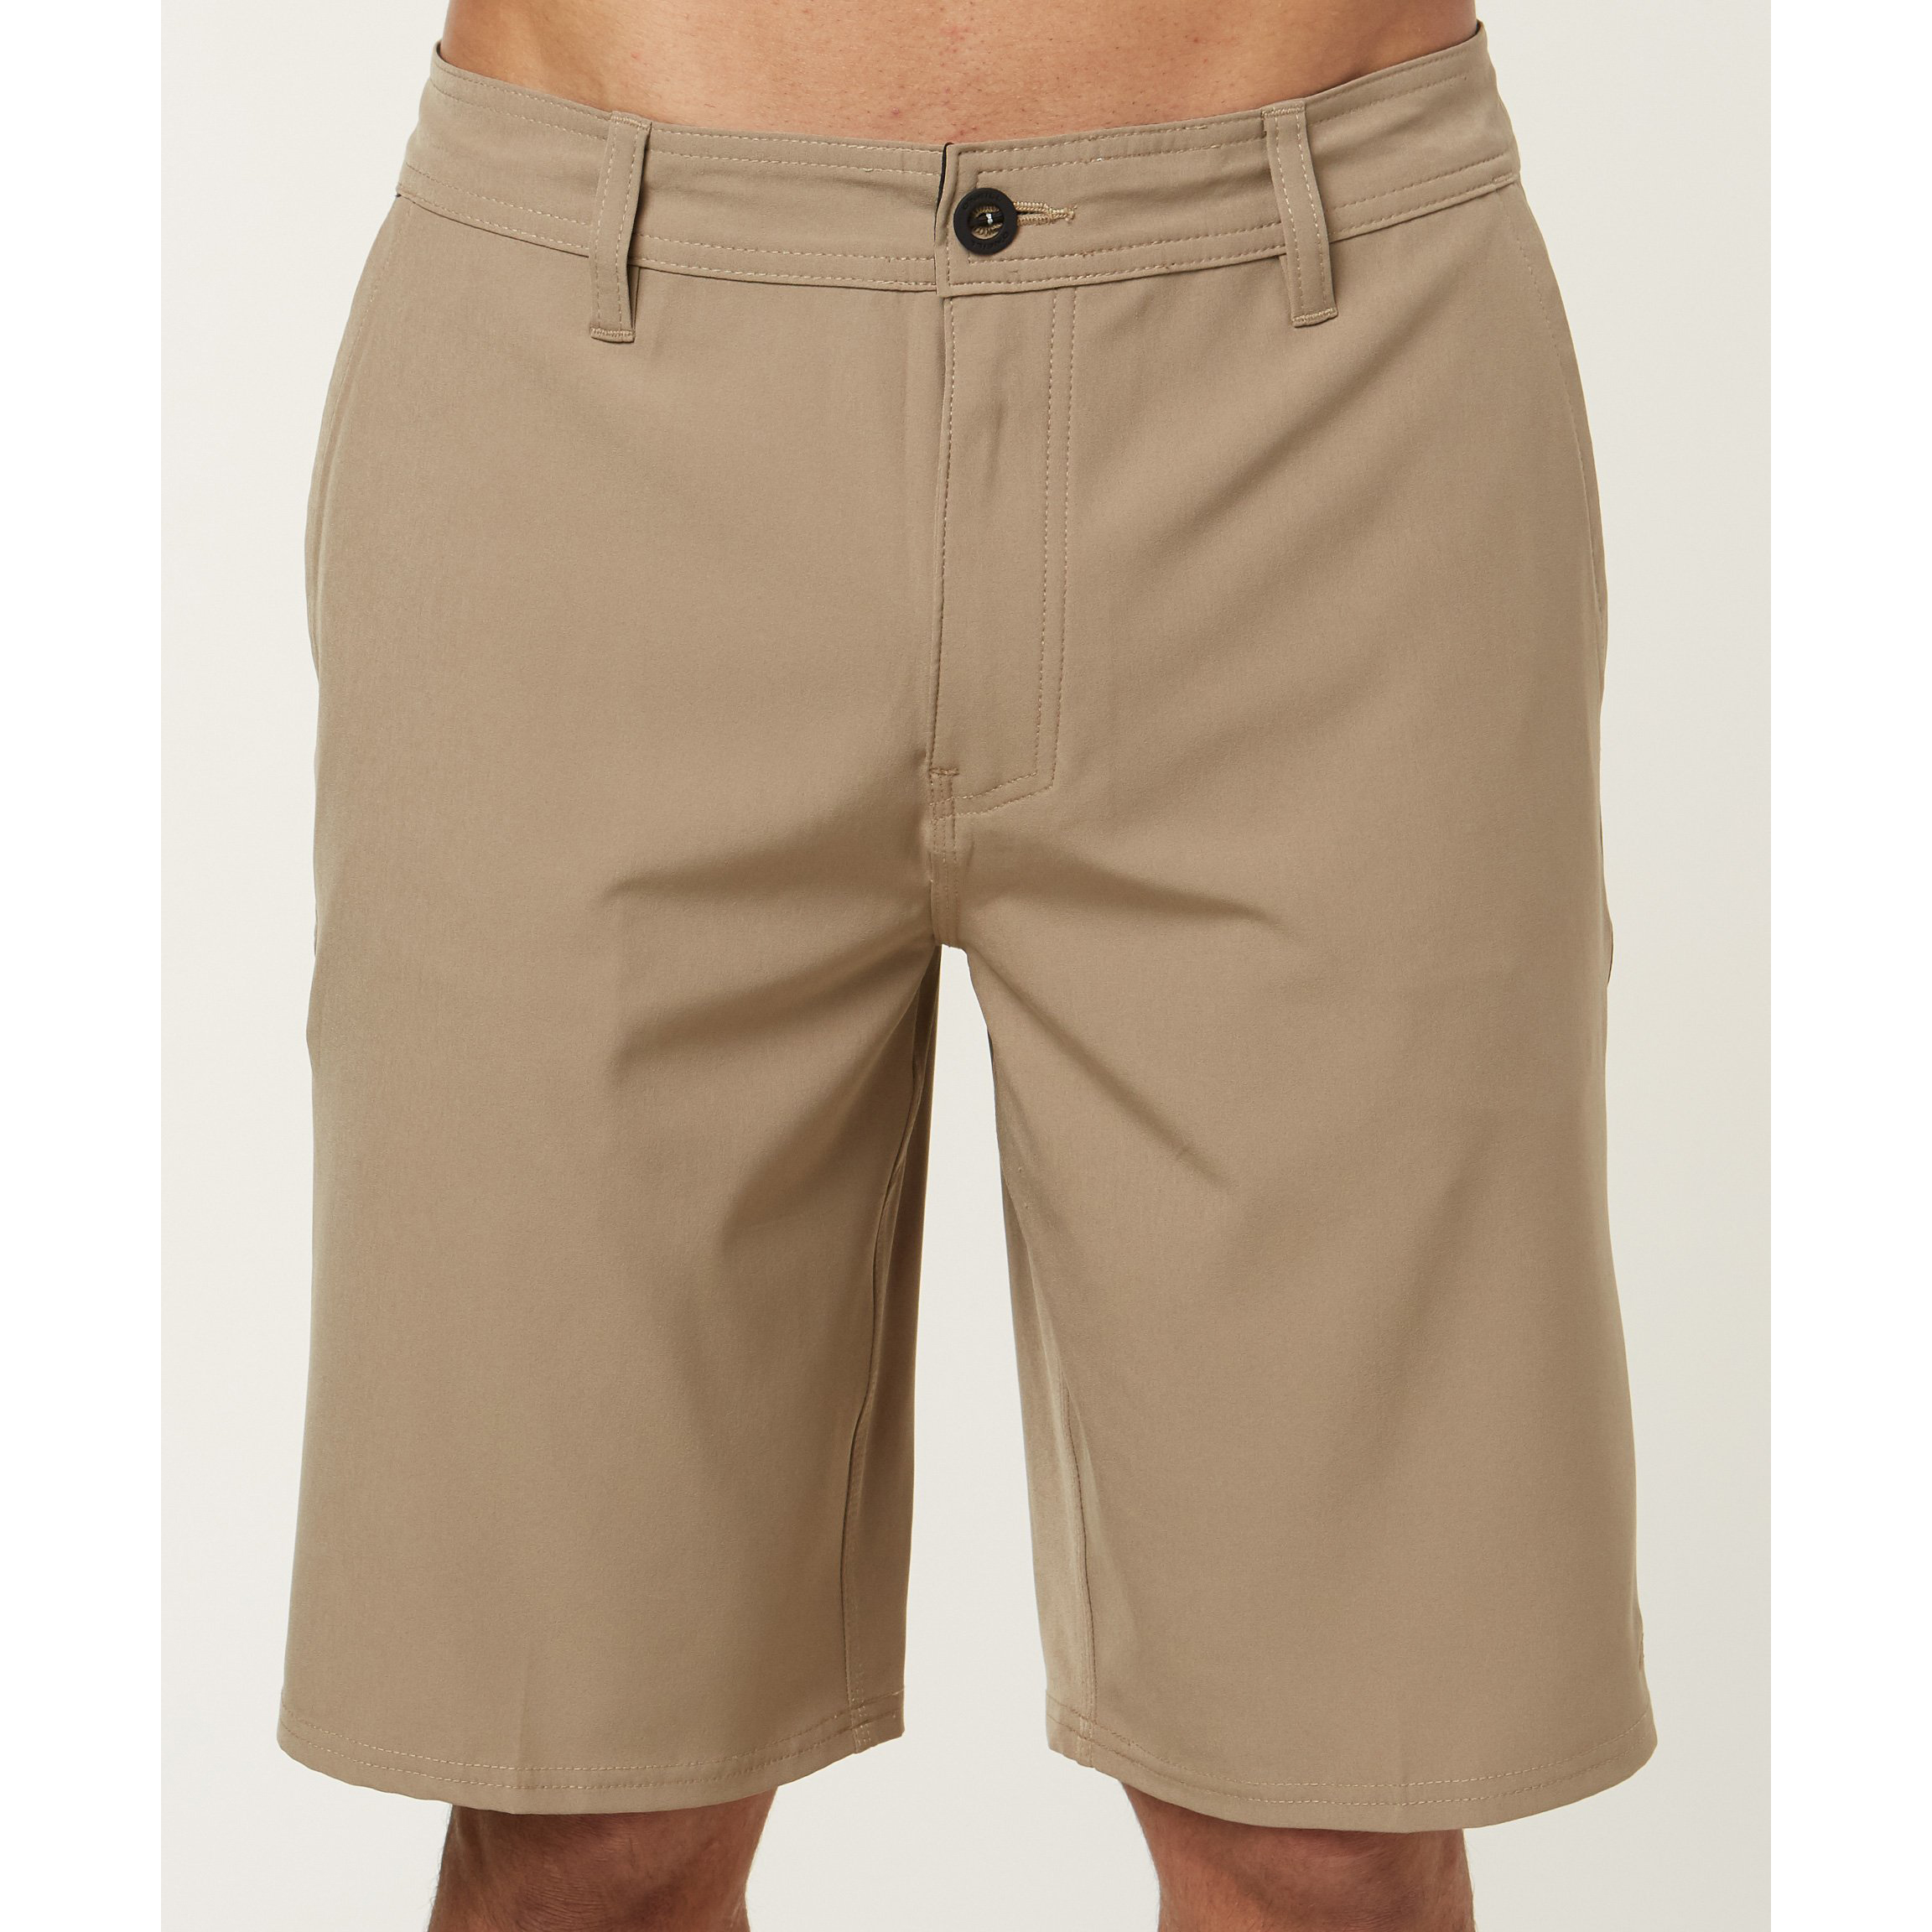 O'NEILL LOADED SOLID HYBRID SHORTS (SP718A035)